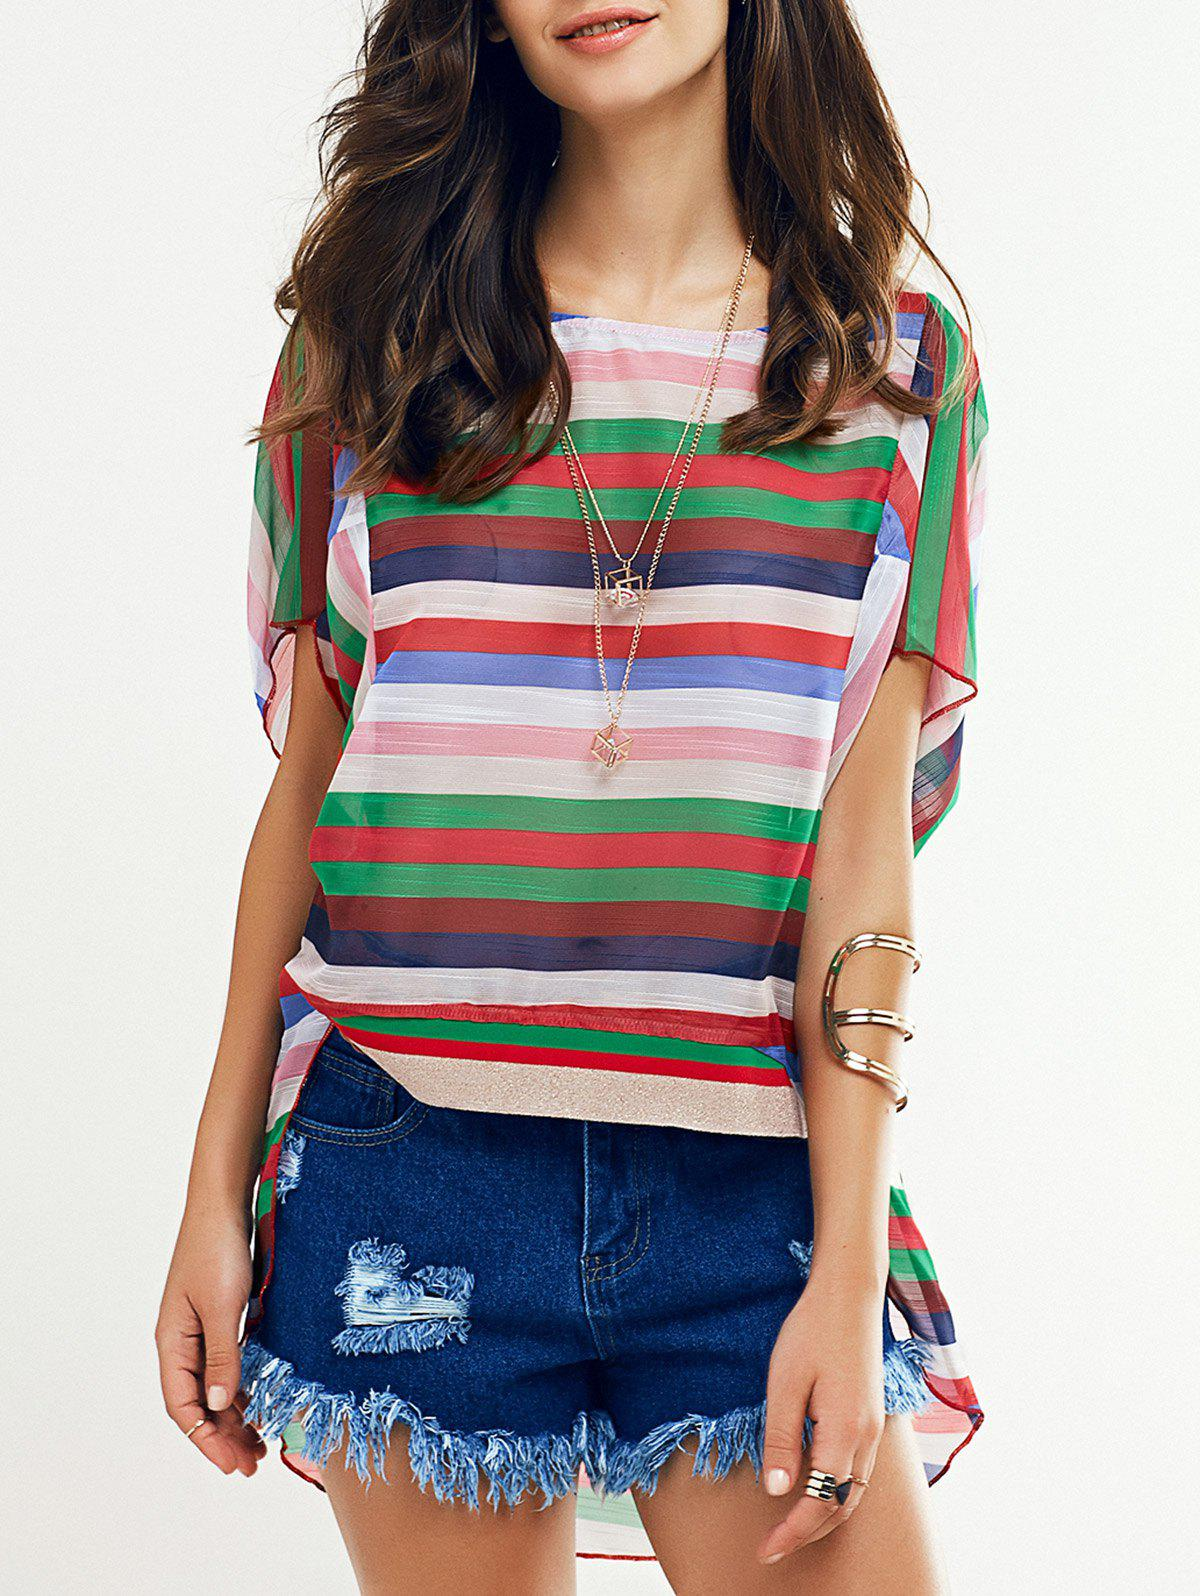 Colorful Batwing Sleeve Striped T-Shirt For Women